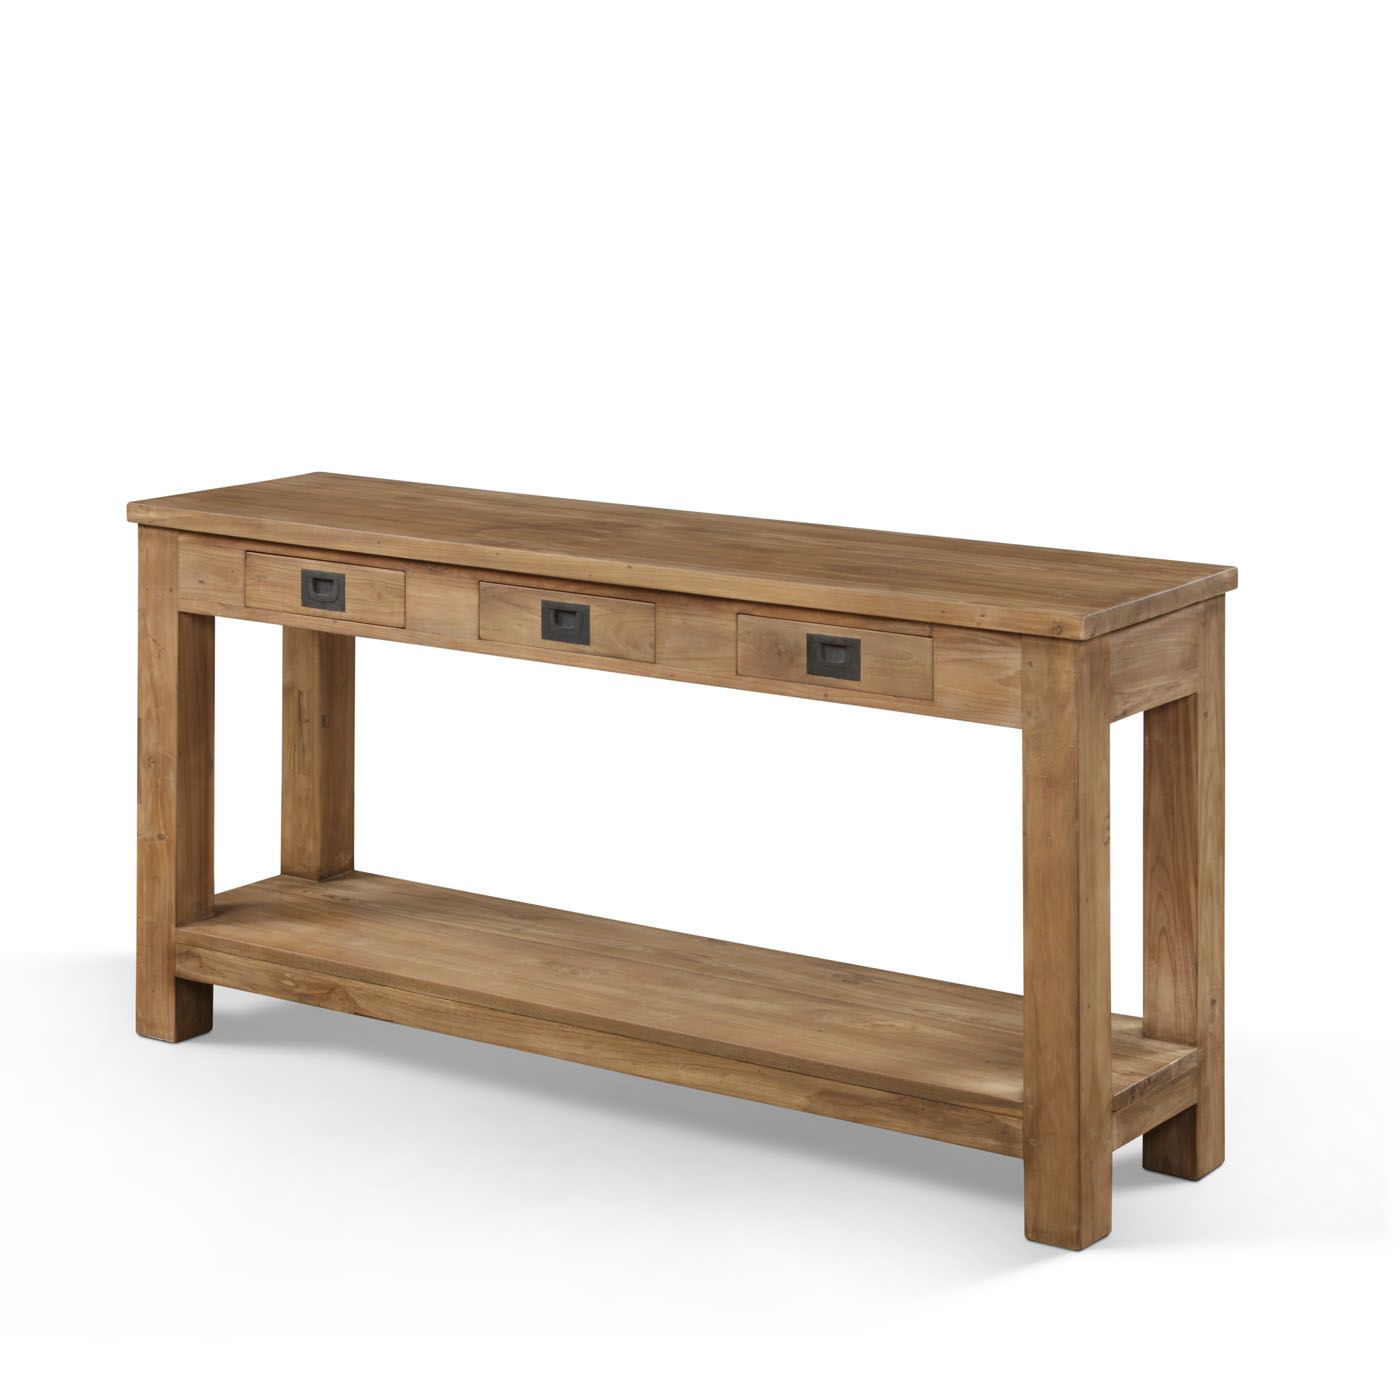 Furniture long and narrow oak console table with storage and furniture long and narrow oak console table with storage and drawer with metal handle for hallway ideas long console table long console table with geotapseo Image collections